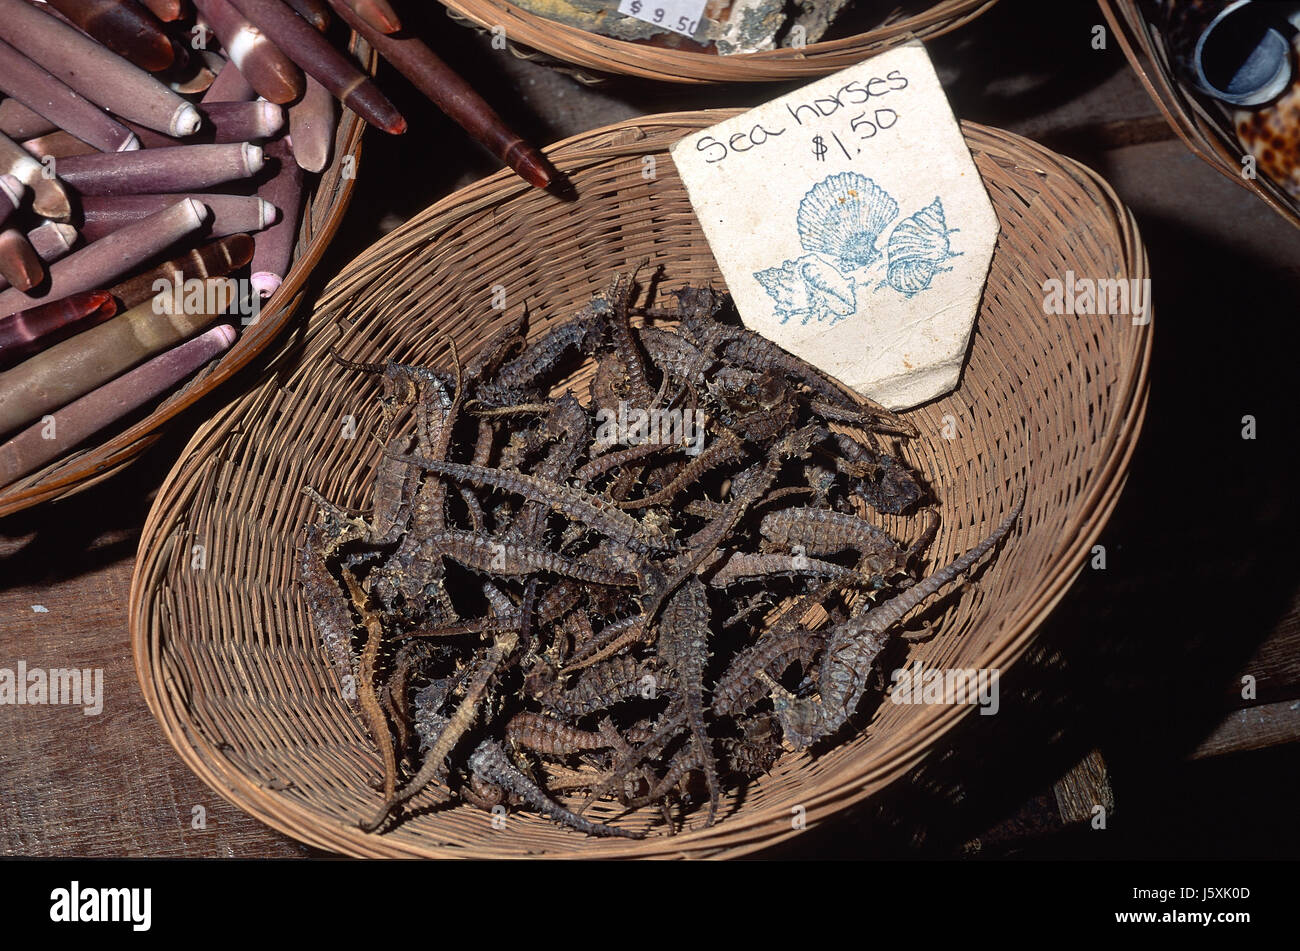 Dried seahorses for sale in curio shop Stock Photo: 141341885 - Alamy